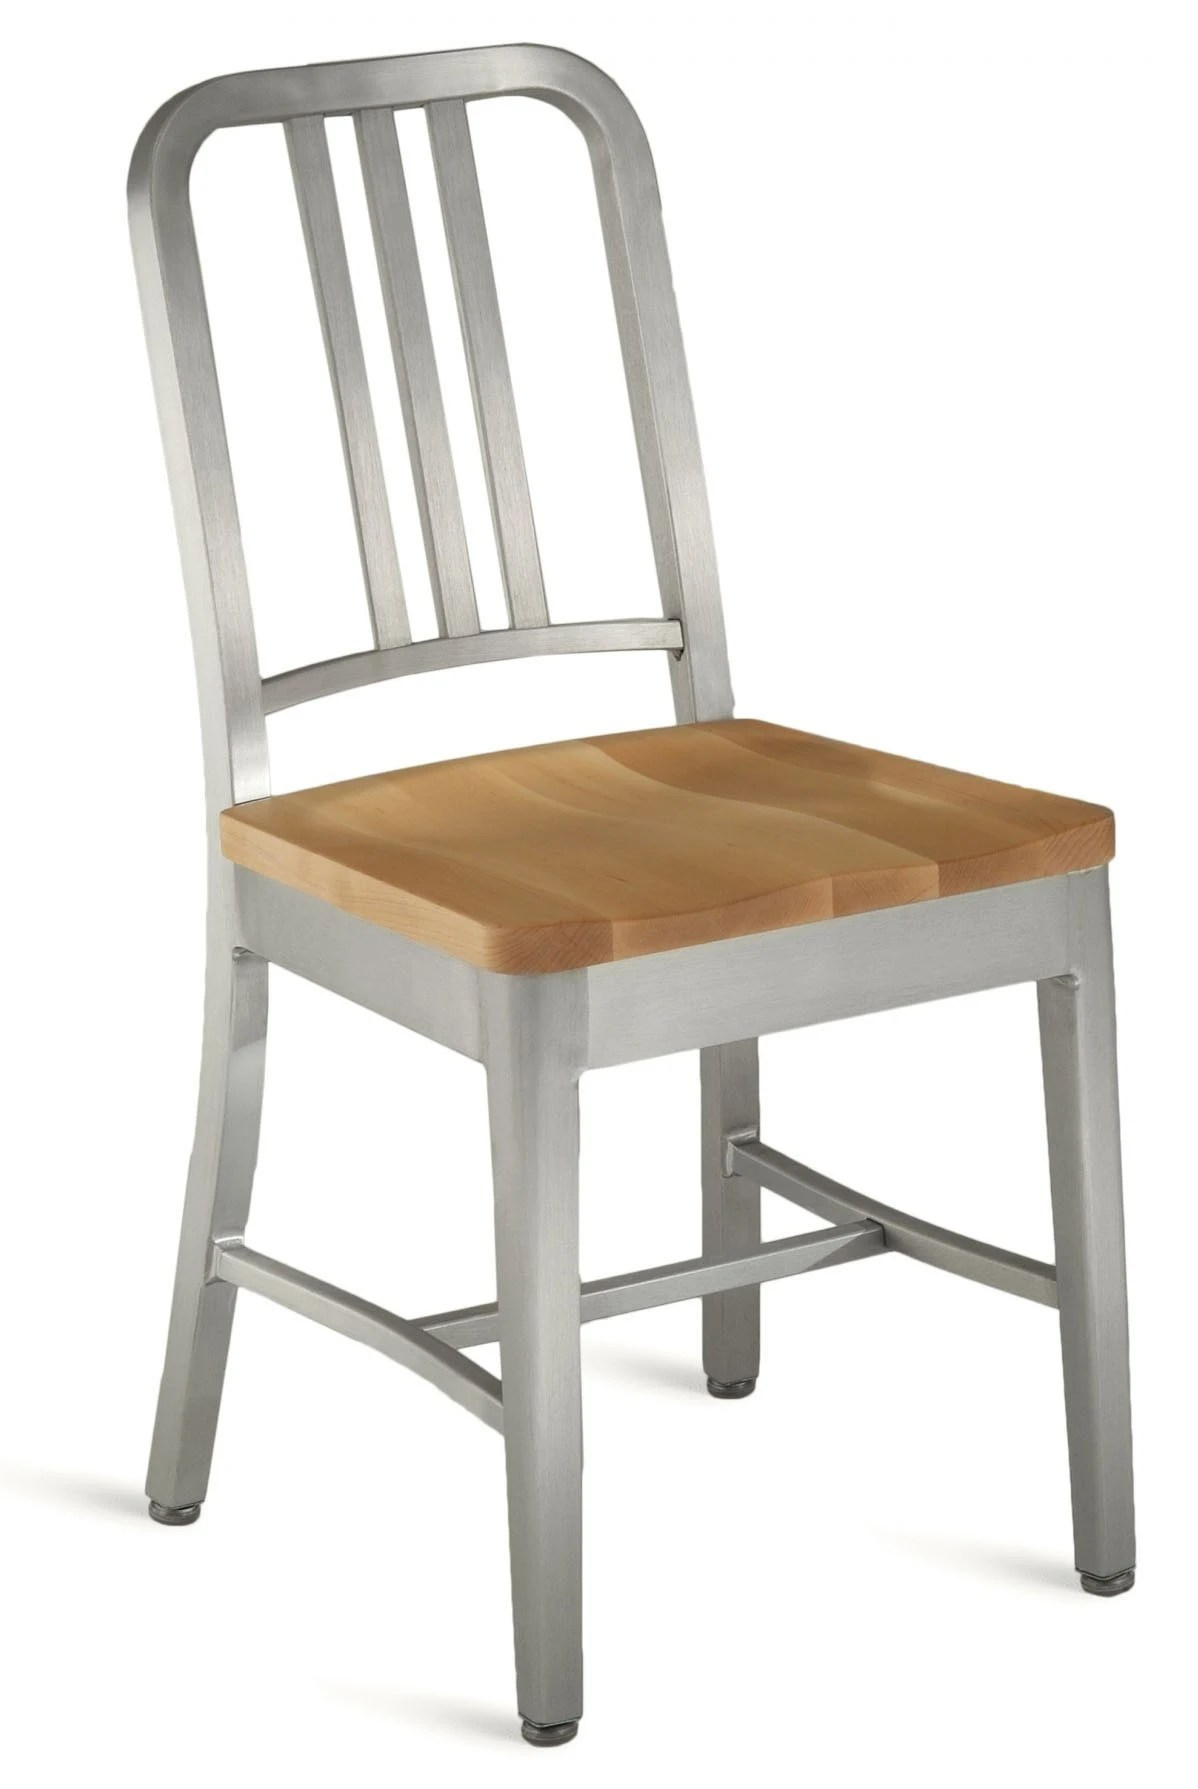 Emeco Navy Chair With Natural Wood Seat  GR Shop Canada